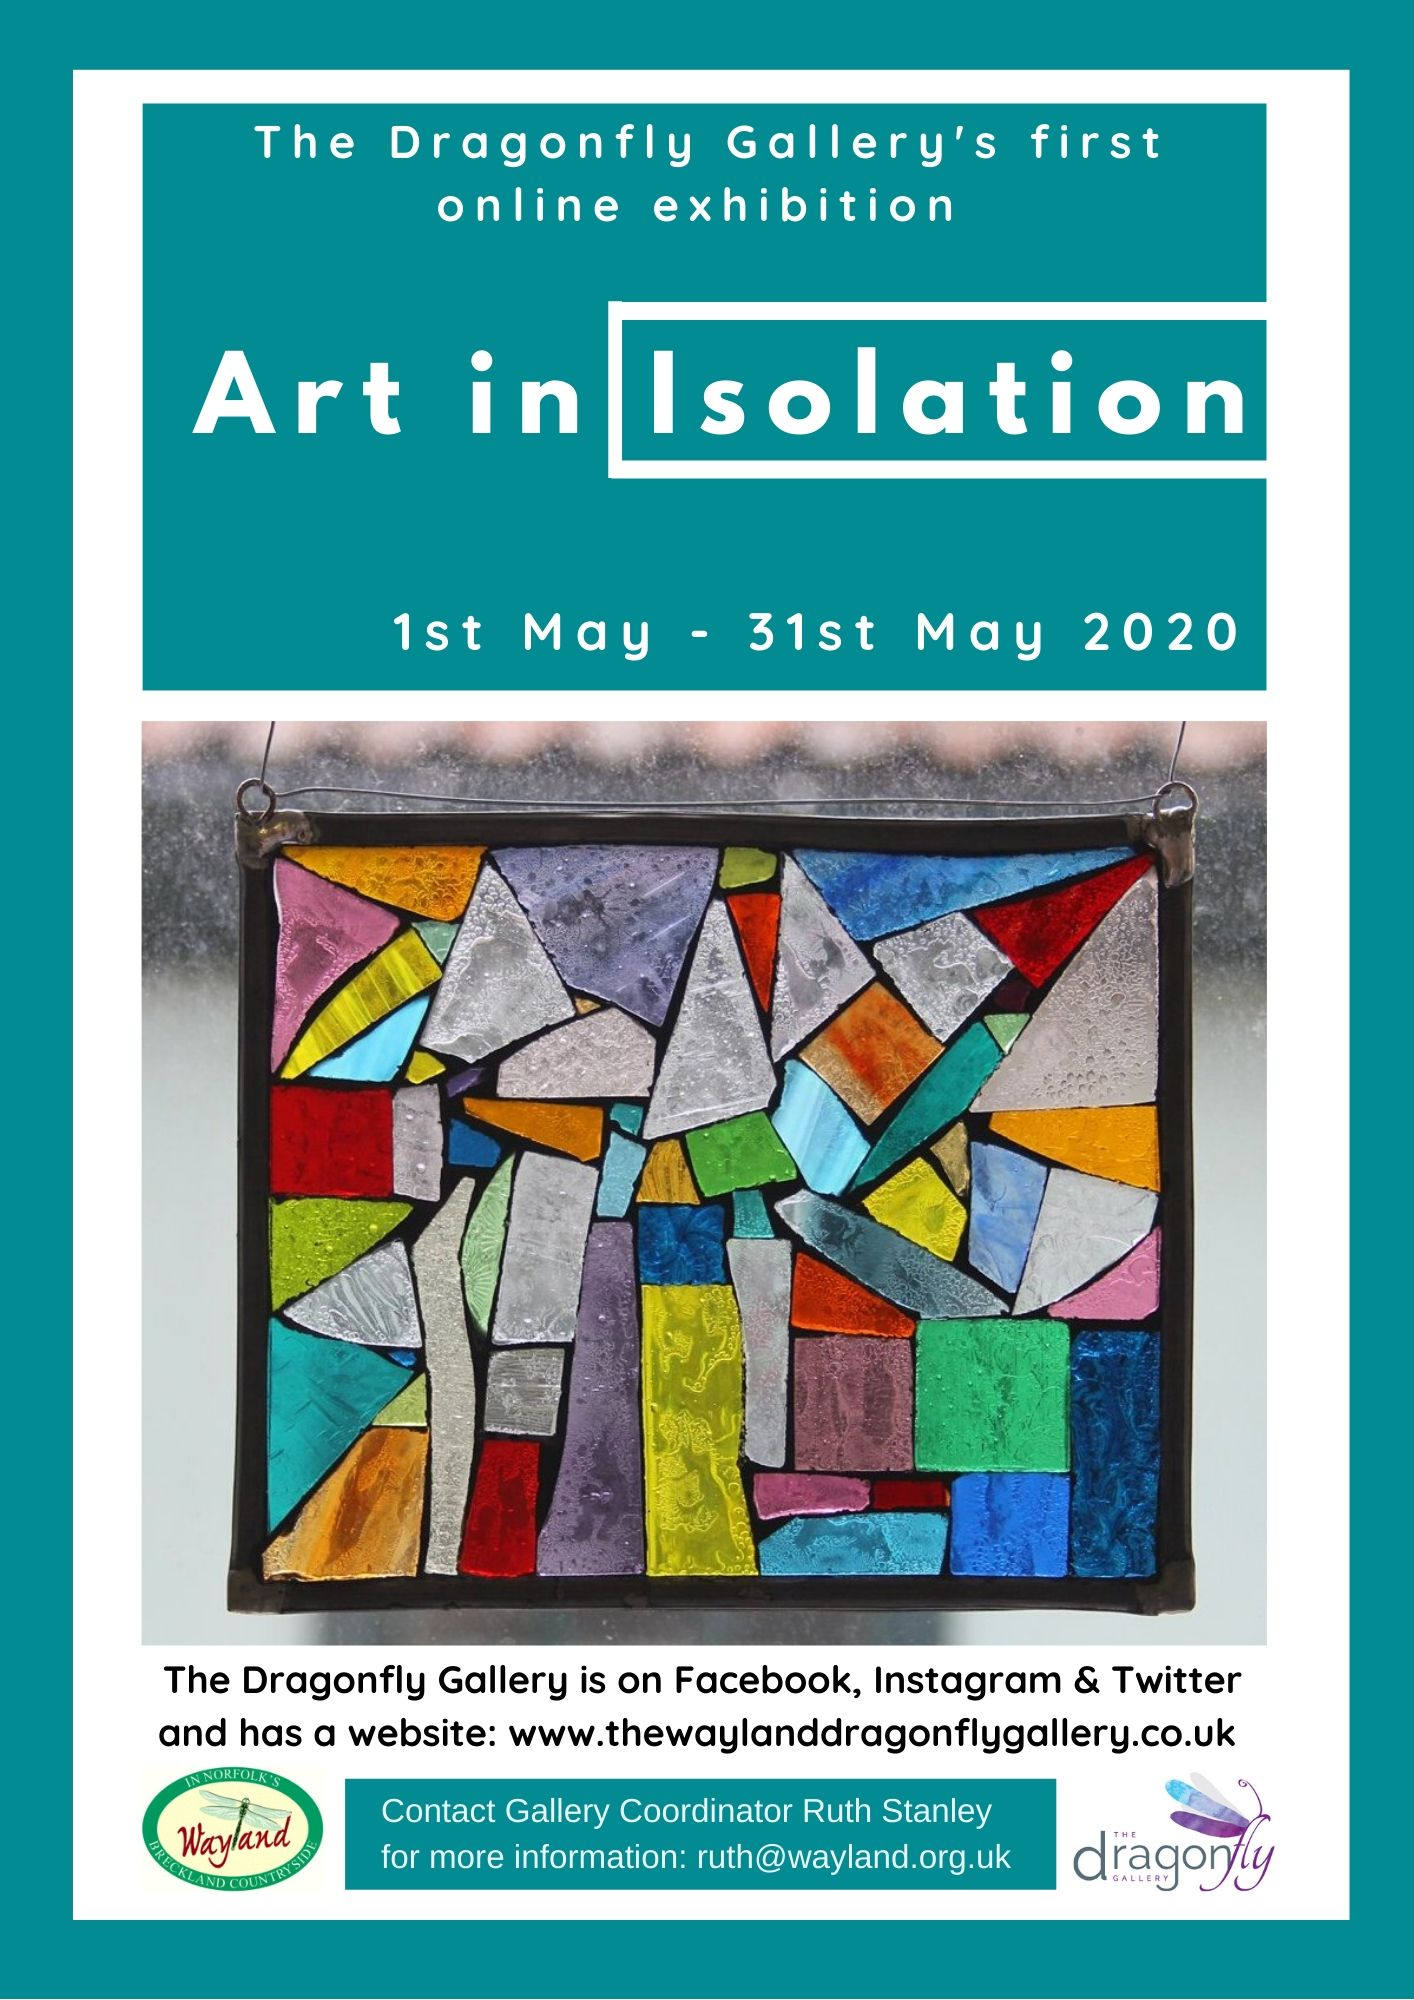 Upcoming exhibition in May 2020: Our first online exhibition